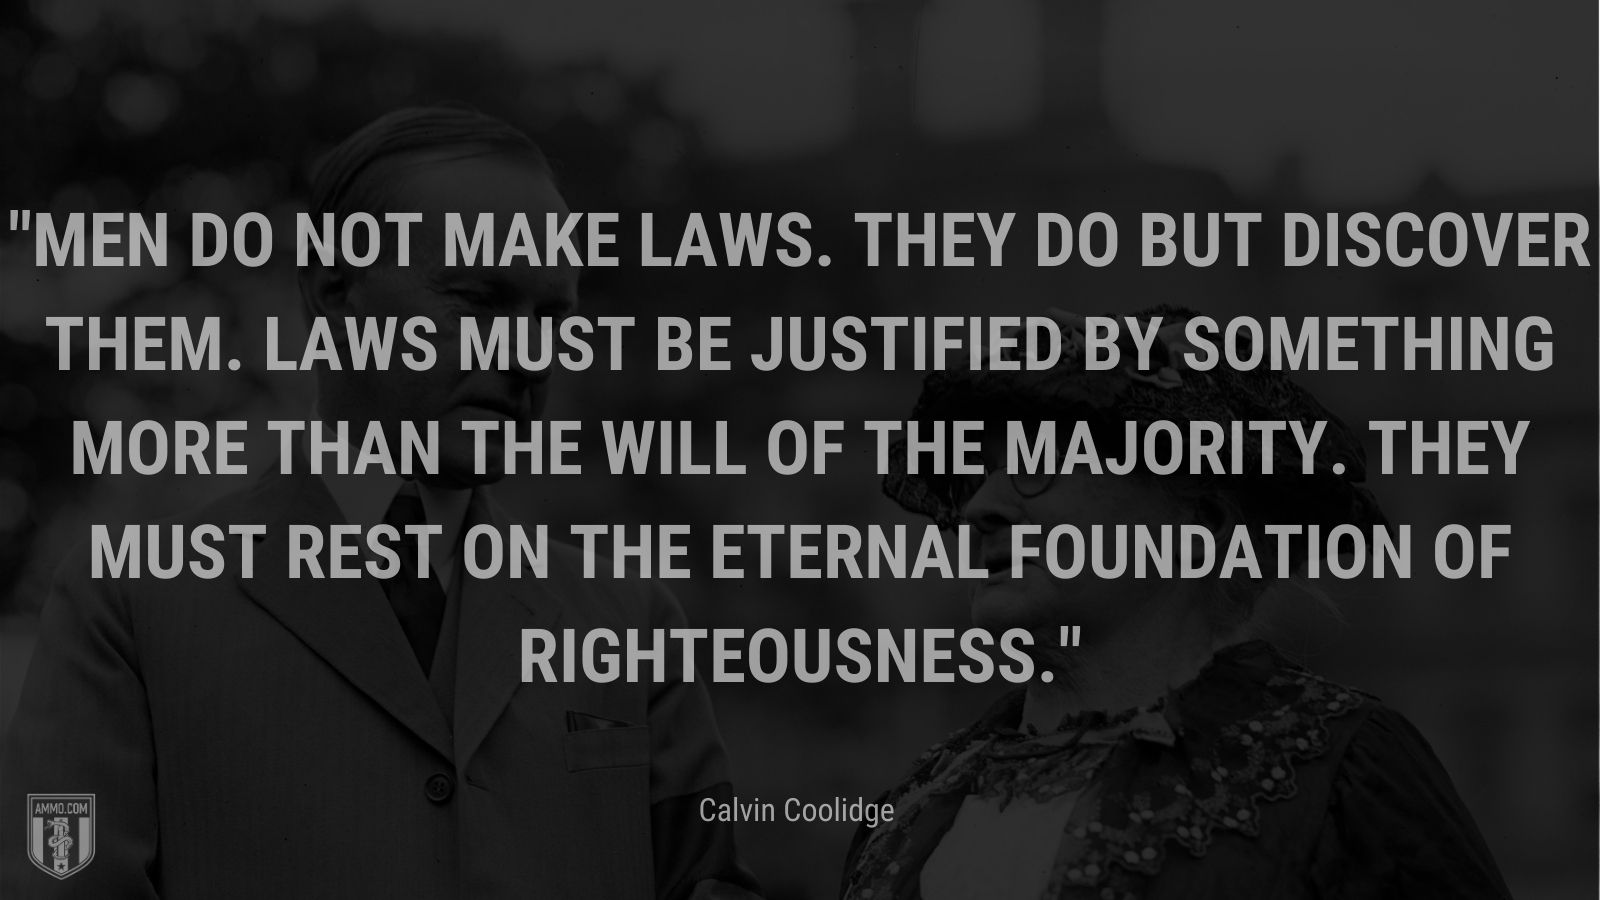 """""""Men do not make laws. They do but discover them. Laws must be justified by something more than the will of the majority. They must rest on the eternal foundation of righteousness."""" - Calvin Coolidge"""